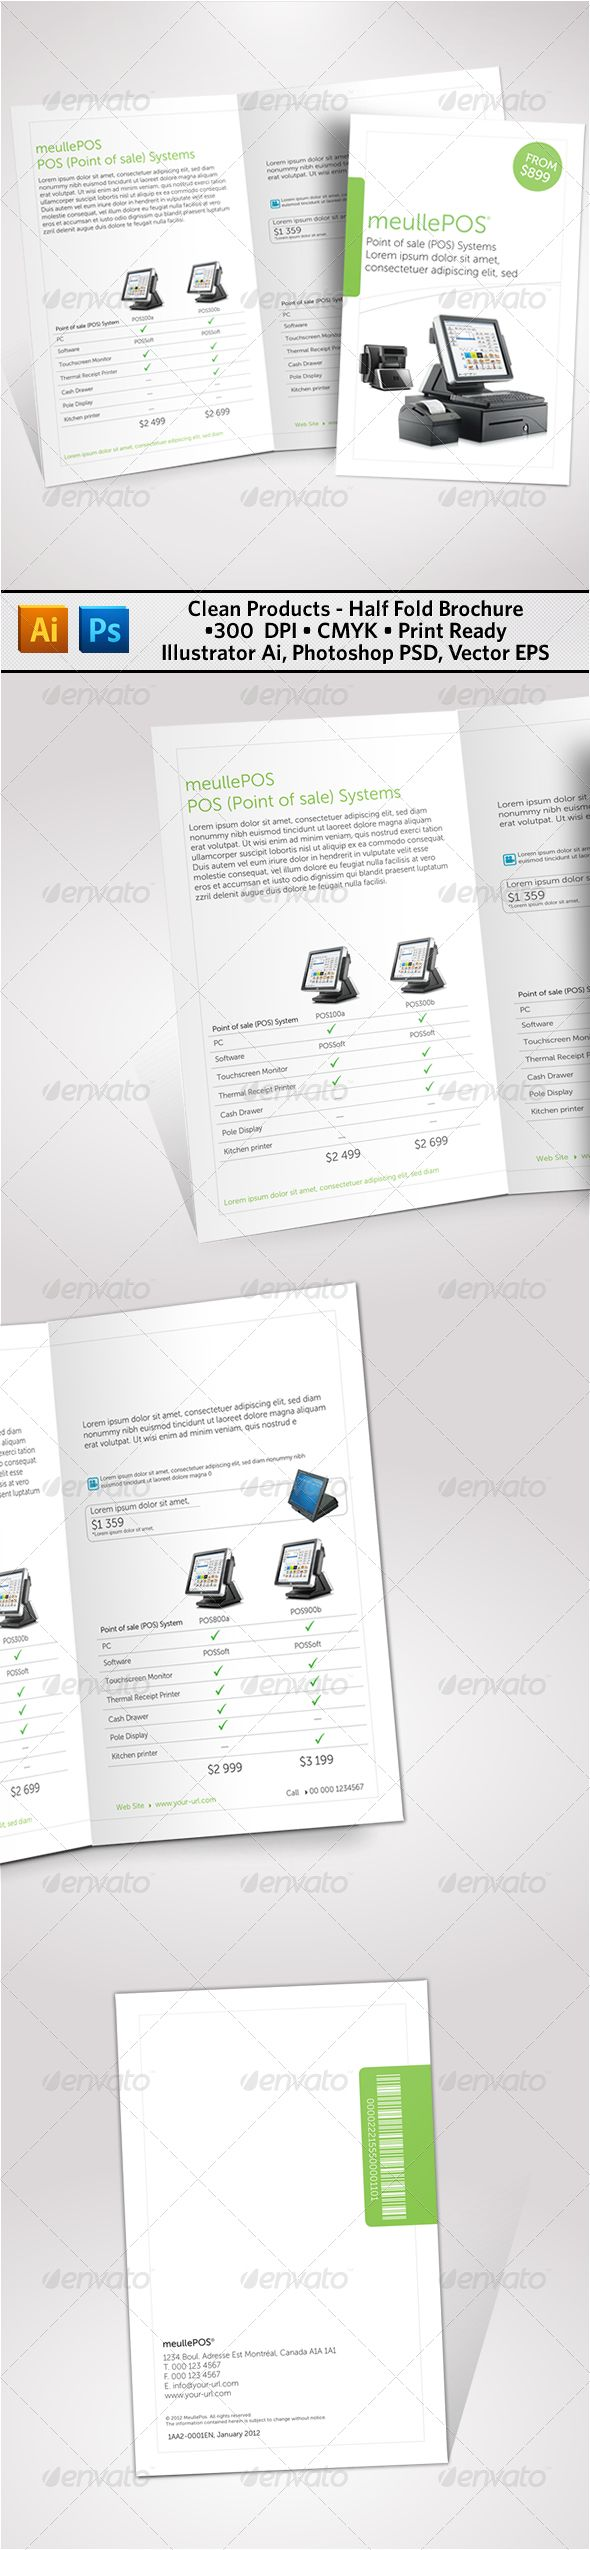 adobe photoshop brochure templates - 106 best images about print templates on pinterest fonts